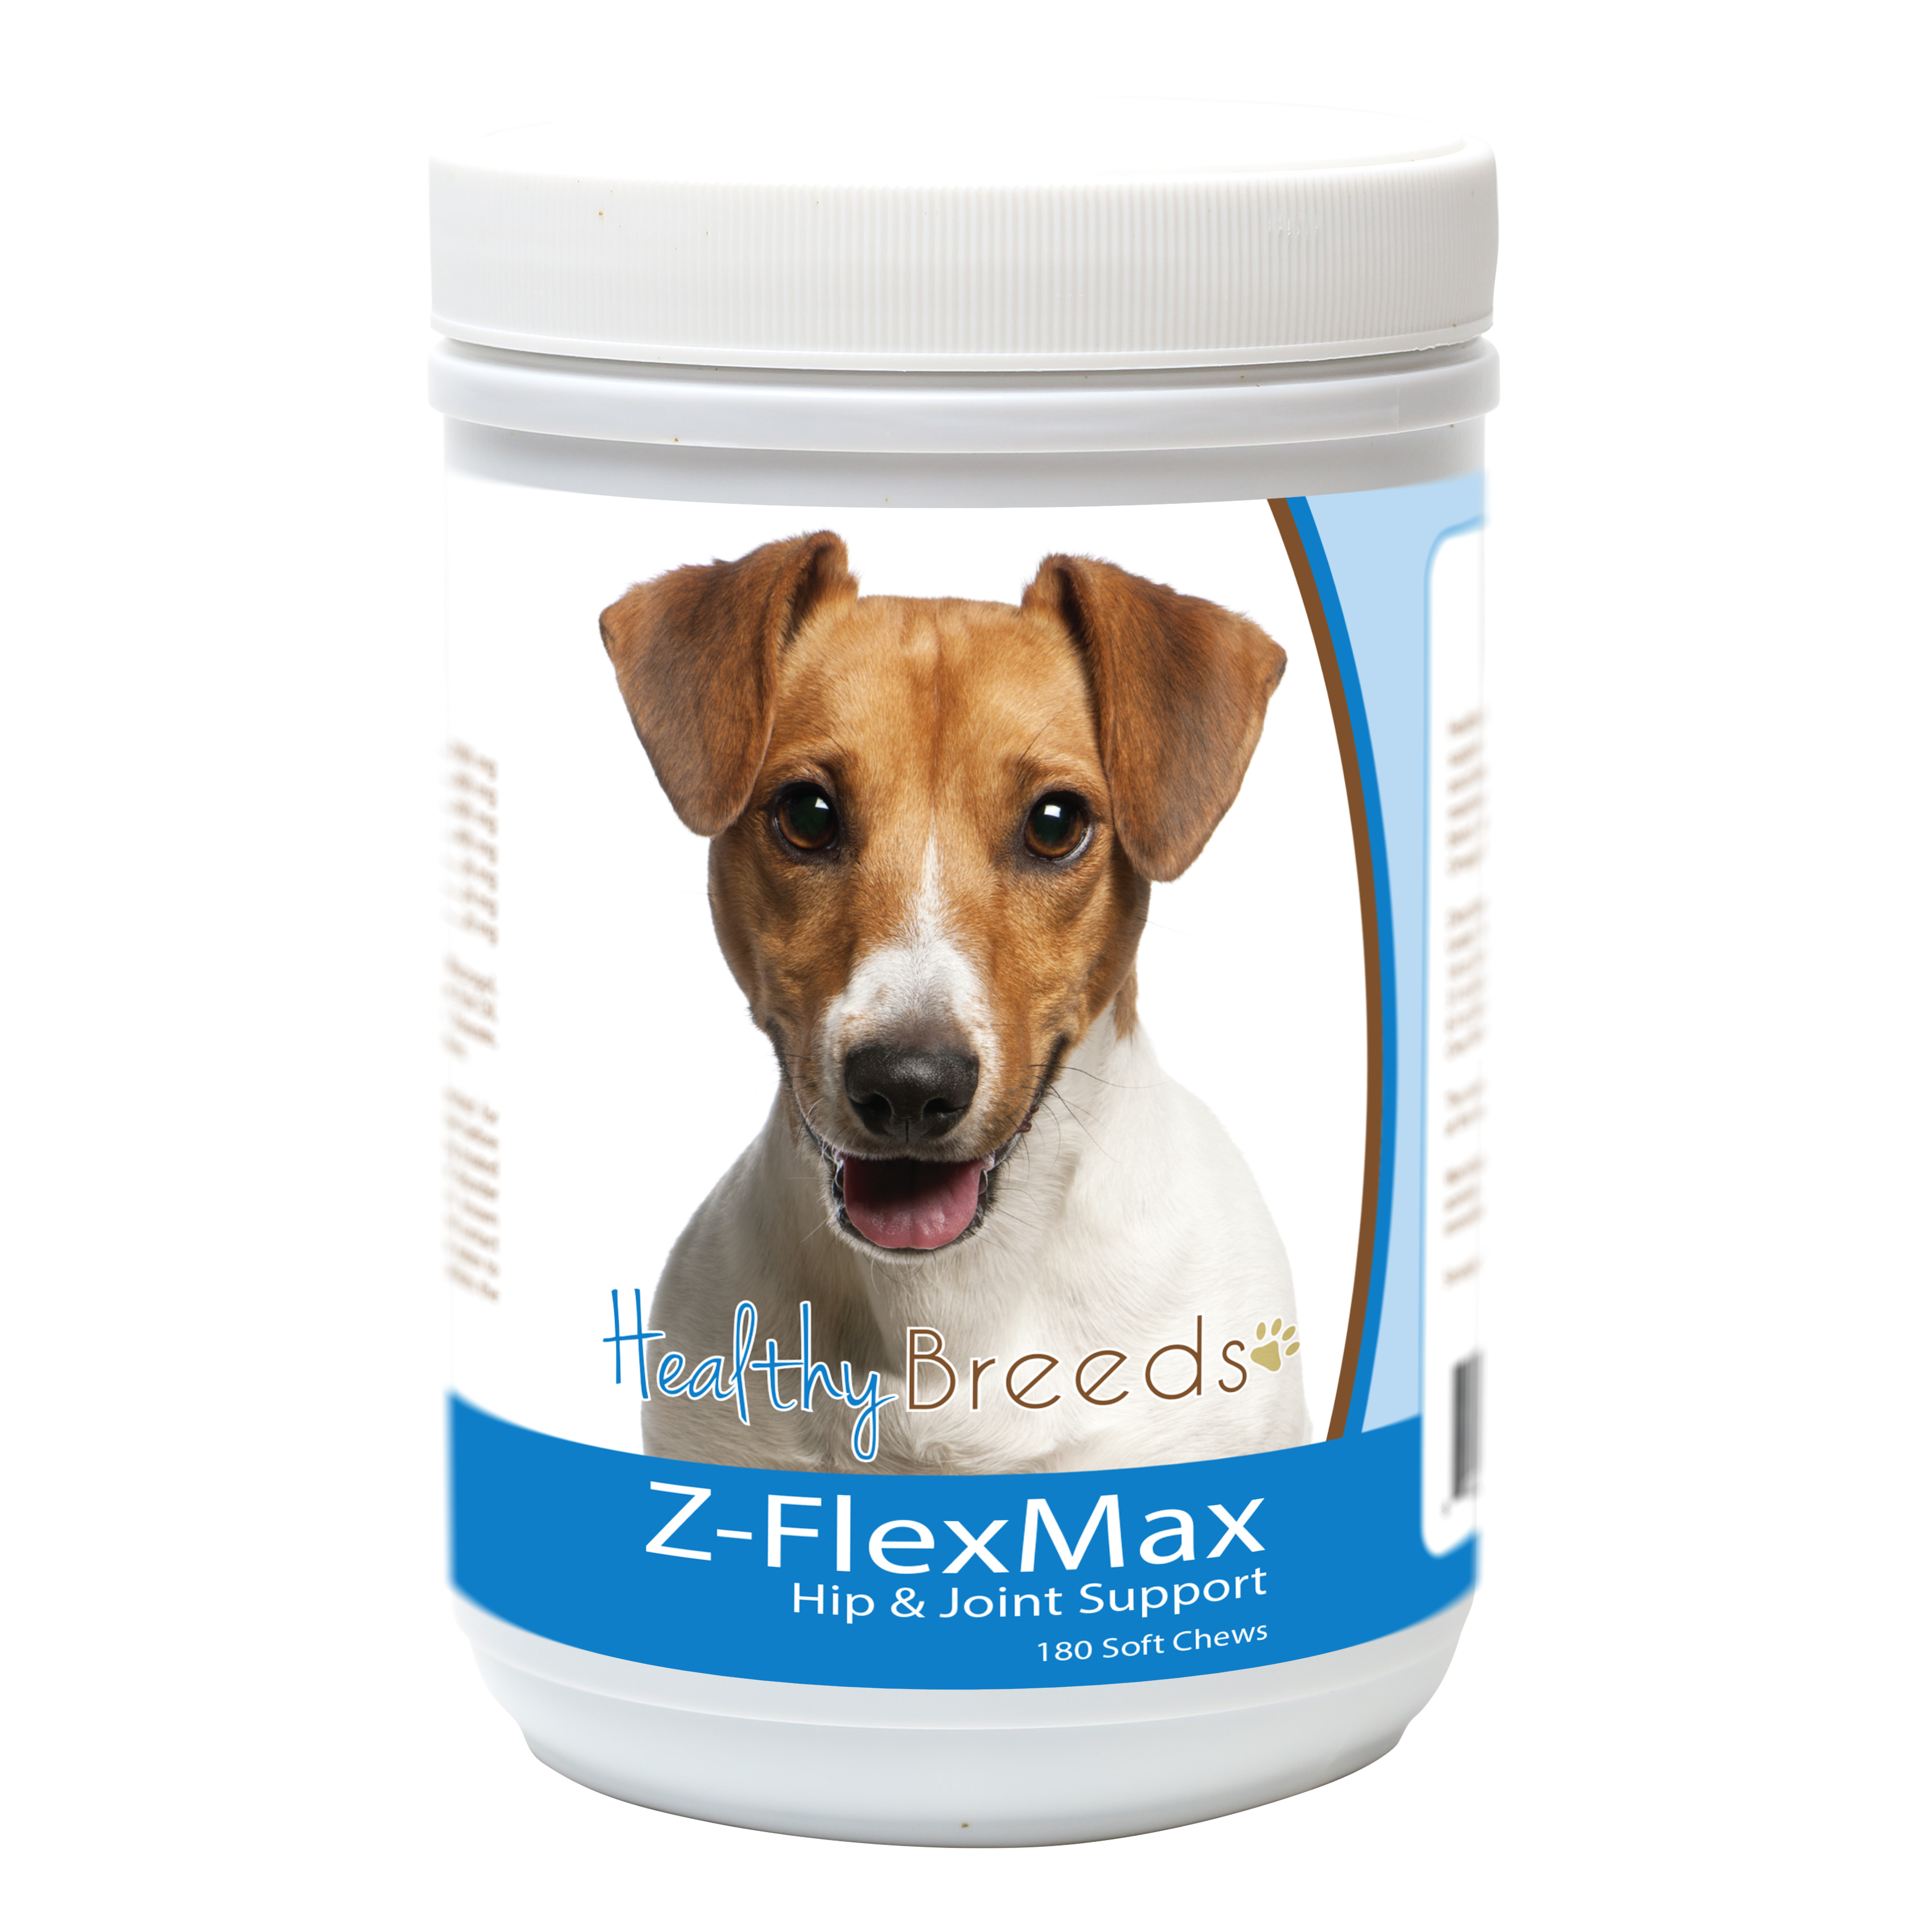 Healthy Breeds Jack Russell Terrier Z-Flex Max Dog Hip and Joint Support 180 Count